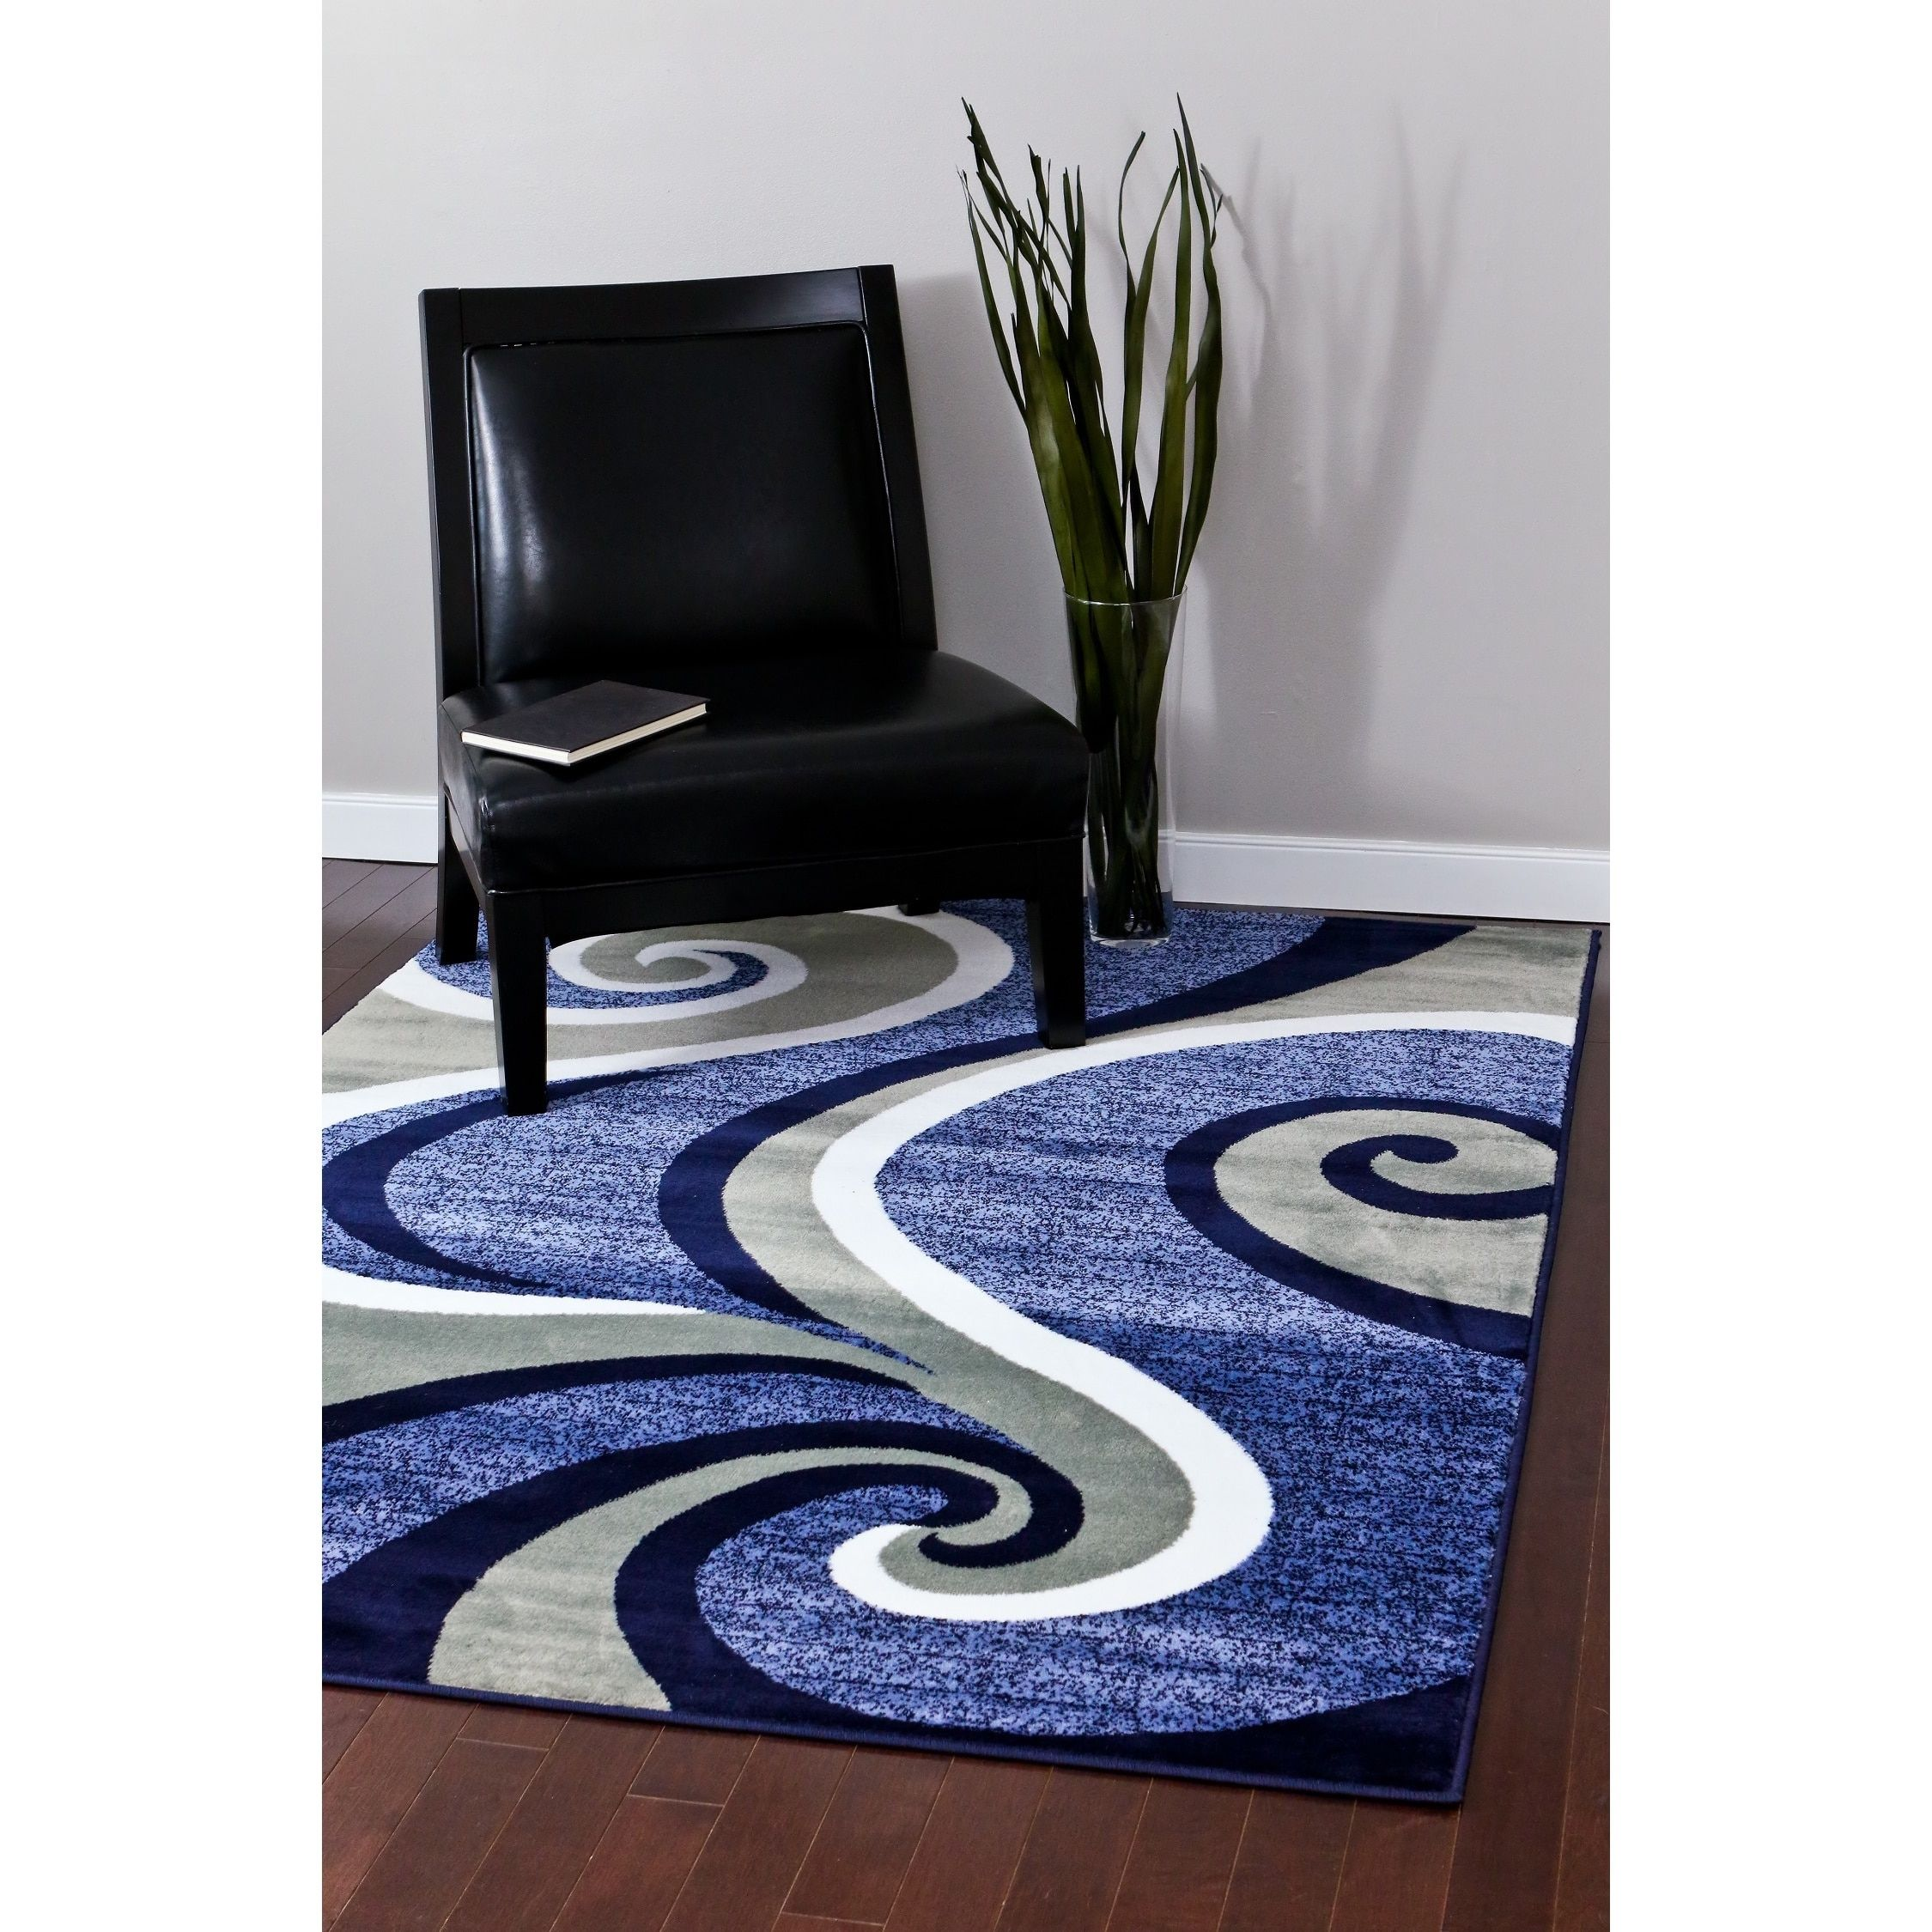 Modern Trendz Collection Dark Blue Swirl Rug 7 10 X 10 2 Blue 7 10 X 10 2 Black Polypropylene Abstract Rugs On Carpet Rugs In Living Room Modern Rugs